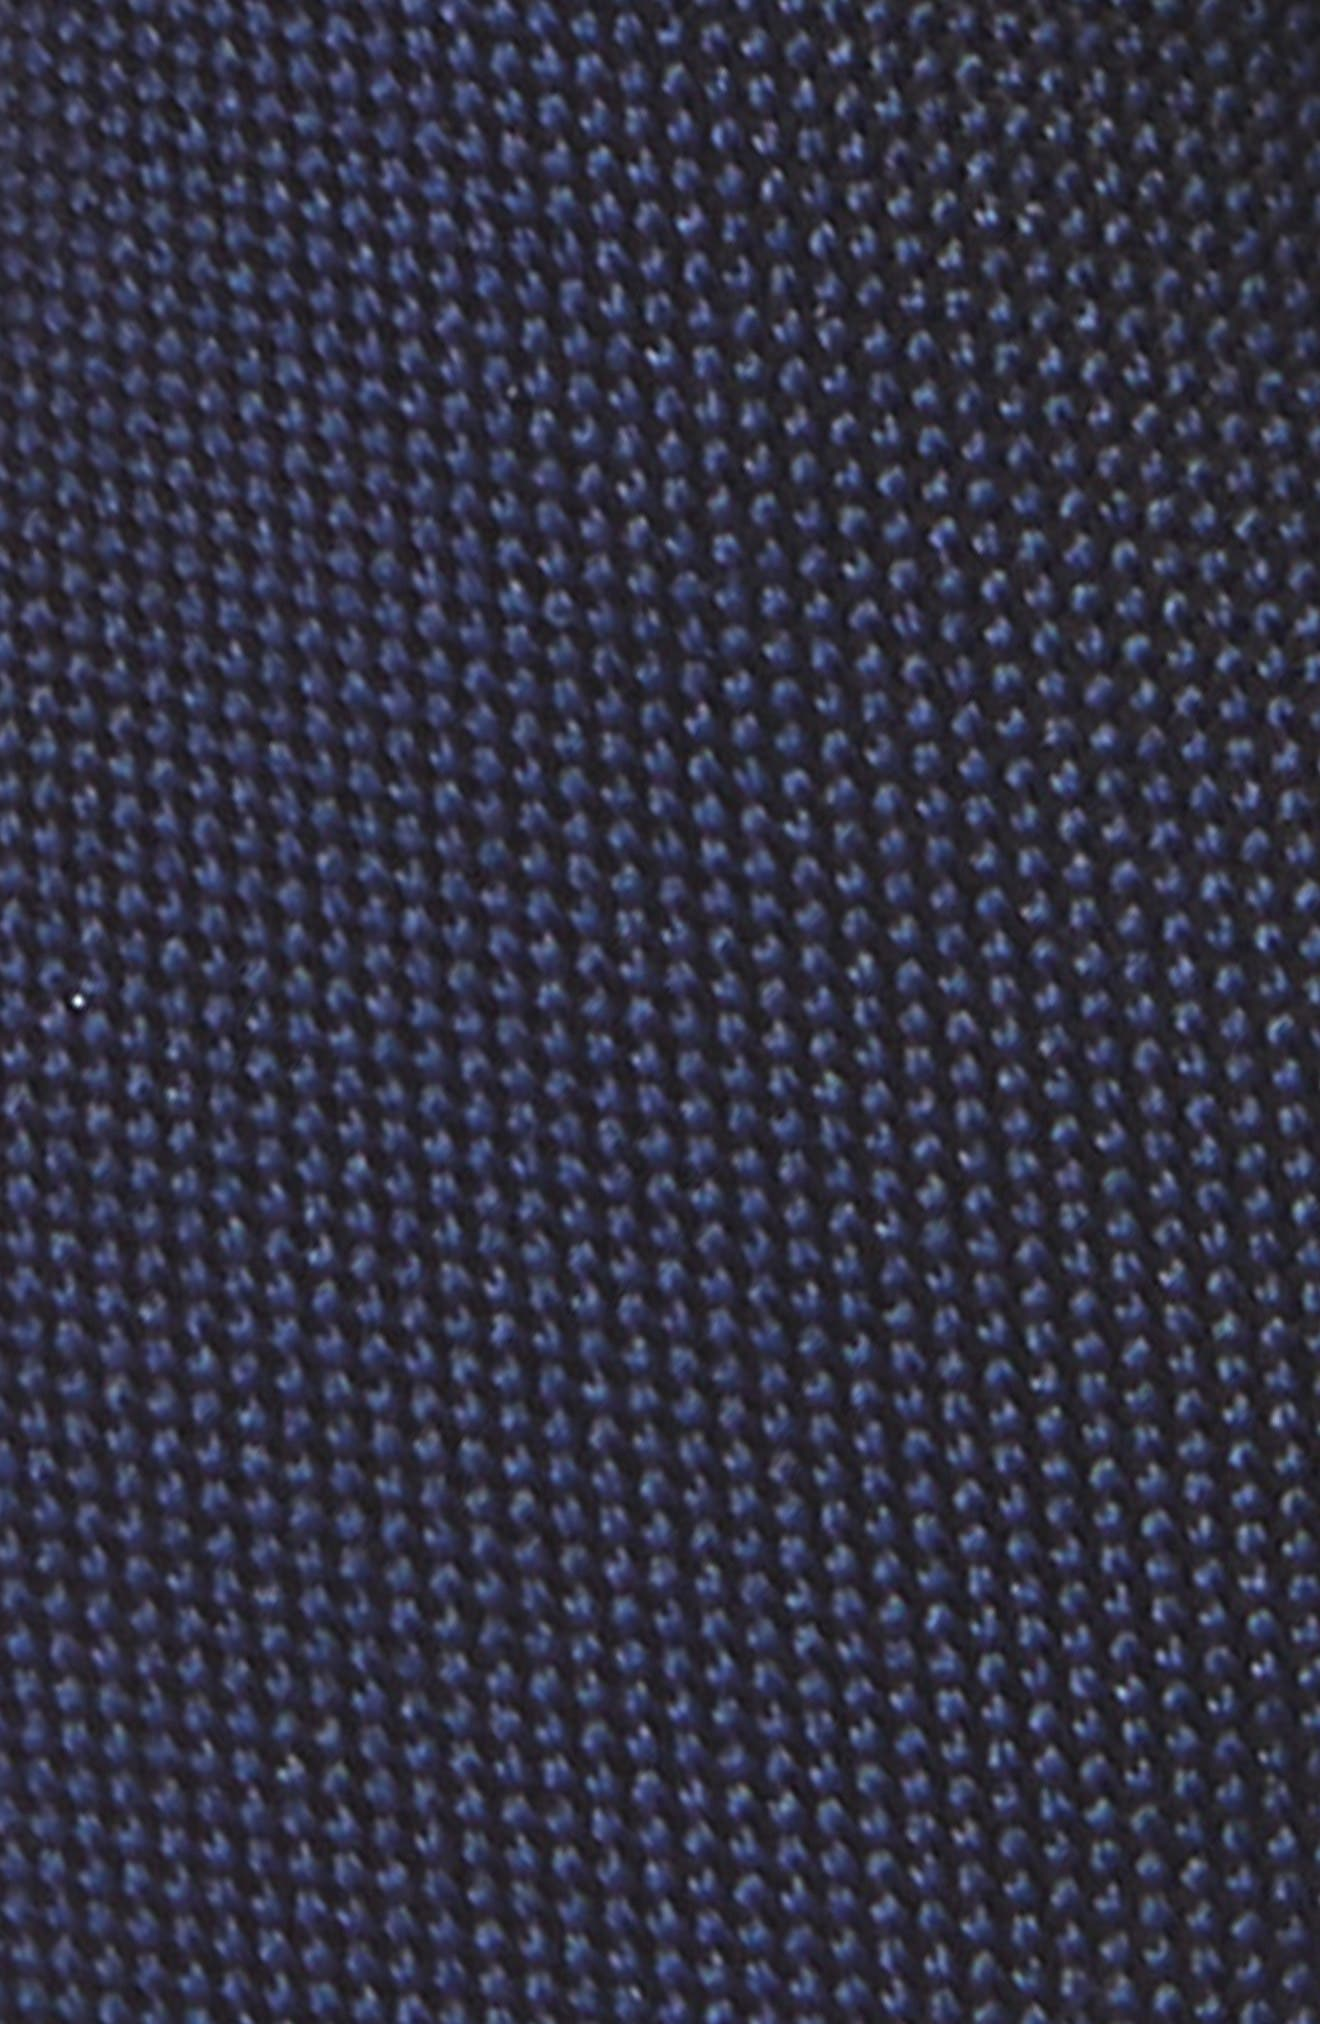 Natte Weave Silk Tie,                             Alternate thumbnail 2, color,                             NAVY